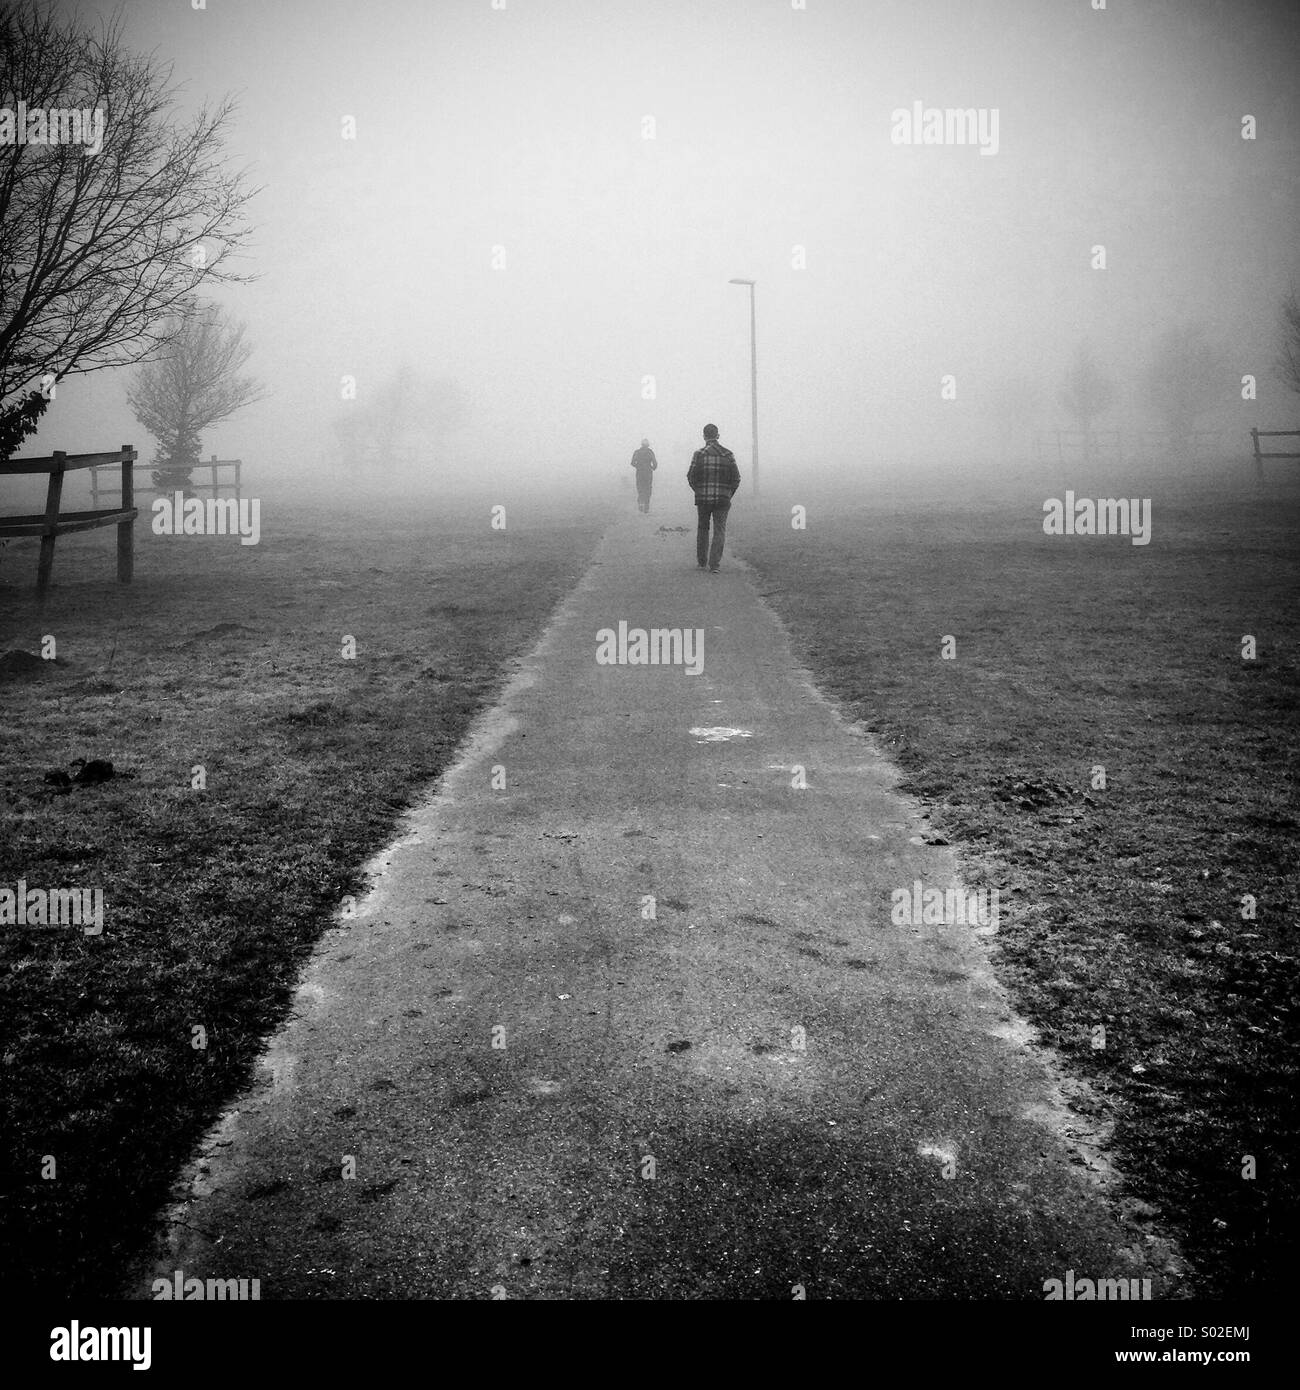 Two figures walk away from camera one ahead of the other along an isolated path through the fog - Stock Image